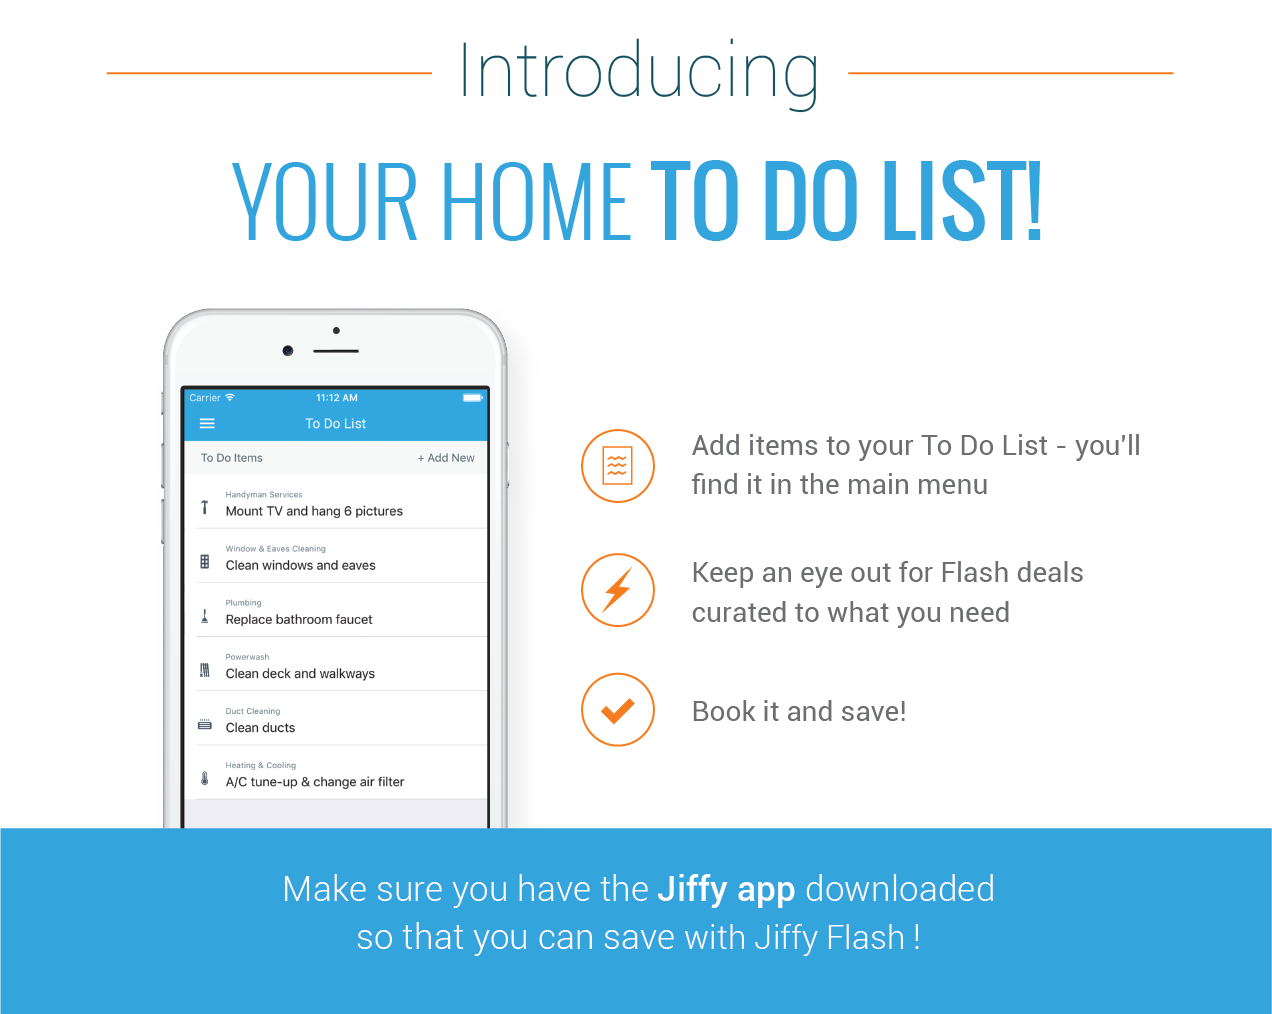 Keep track of your home maintenance to do list easily!